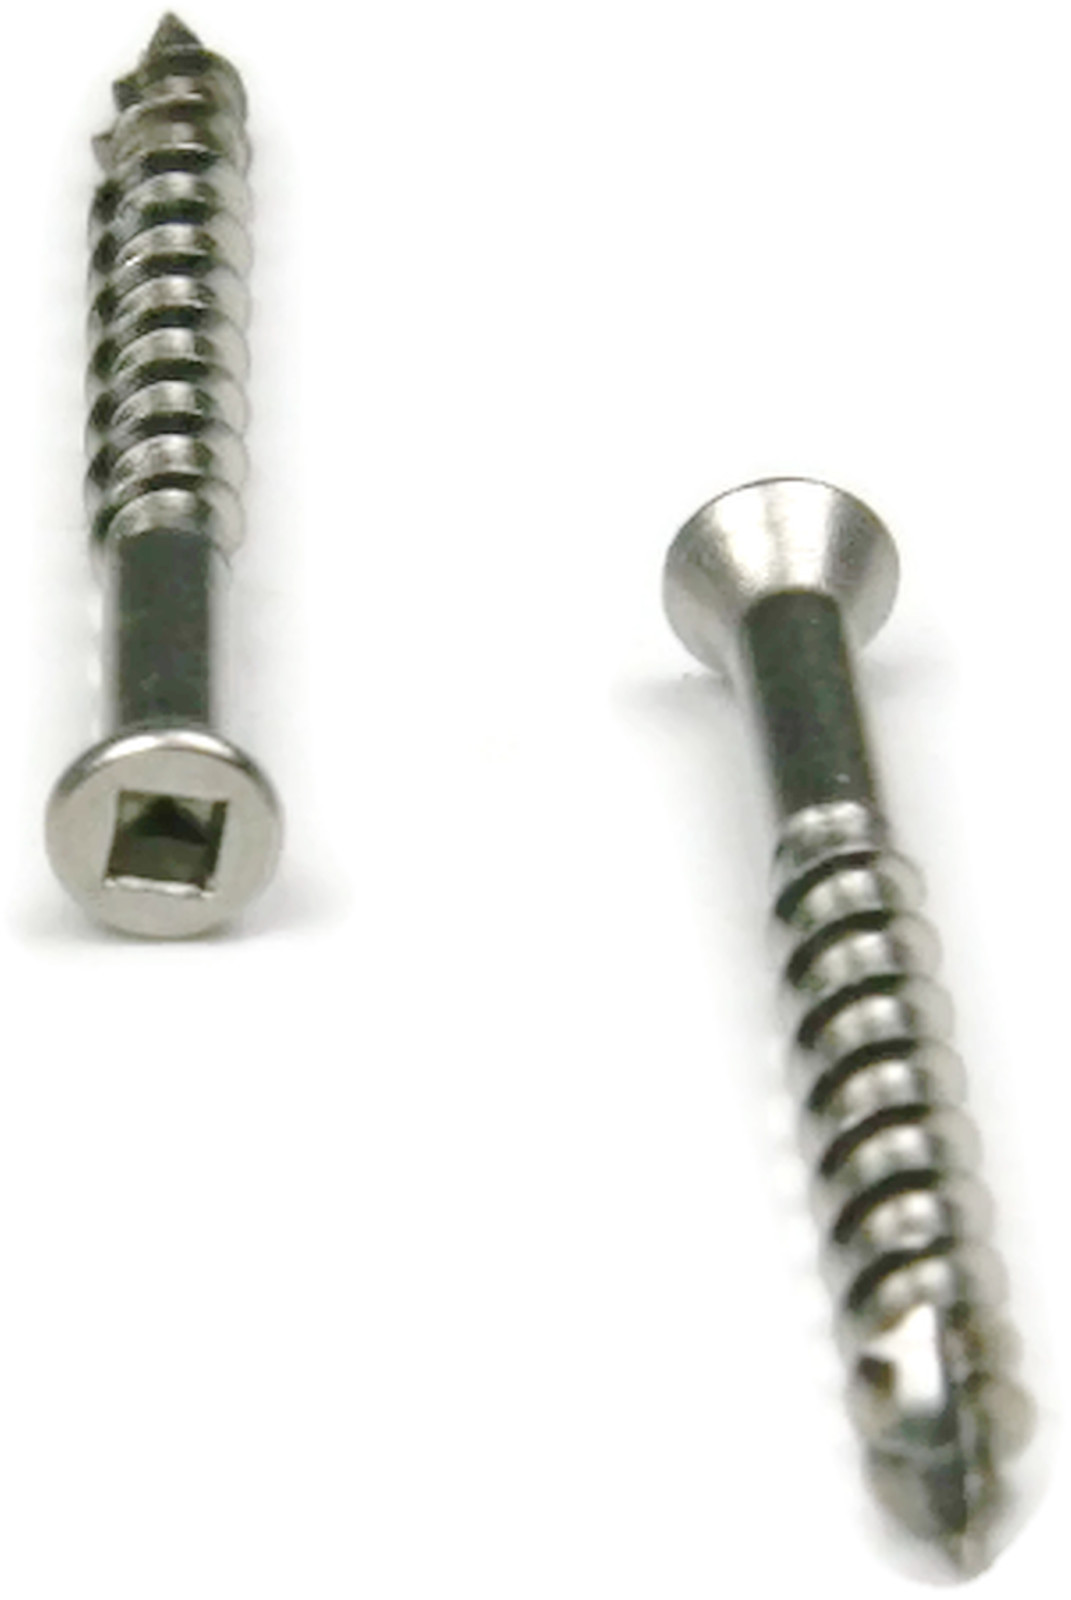 Stainless steel deck screws square drive wood 8 x 2 1 2 for Composite deck fasteners